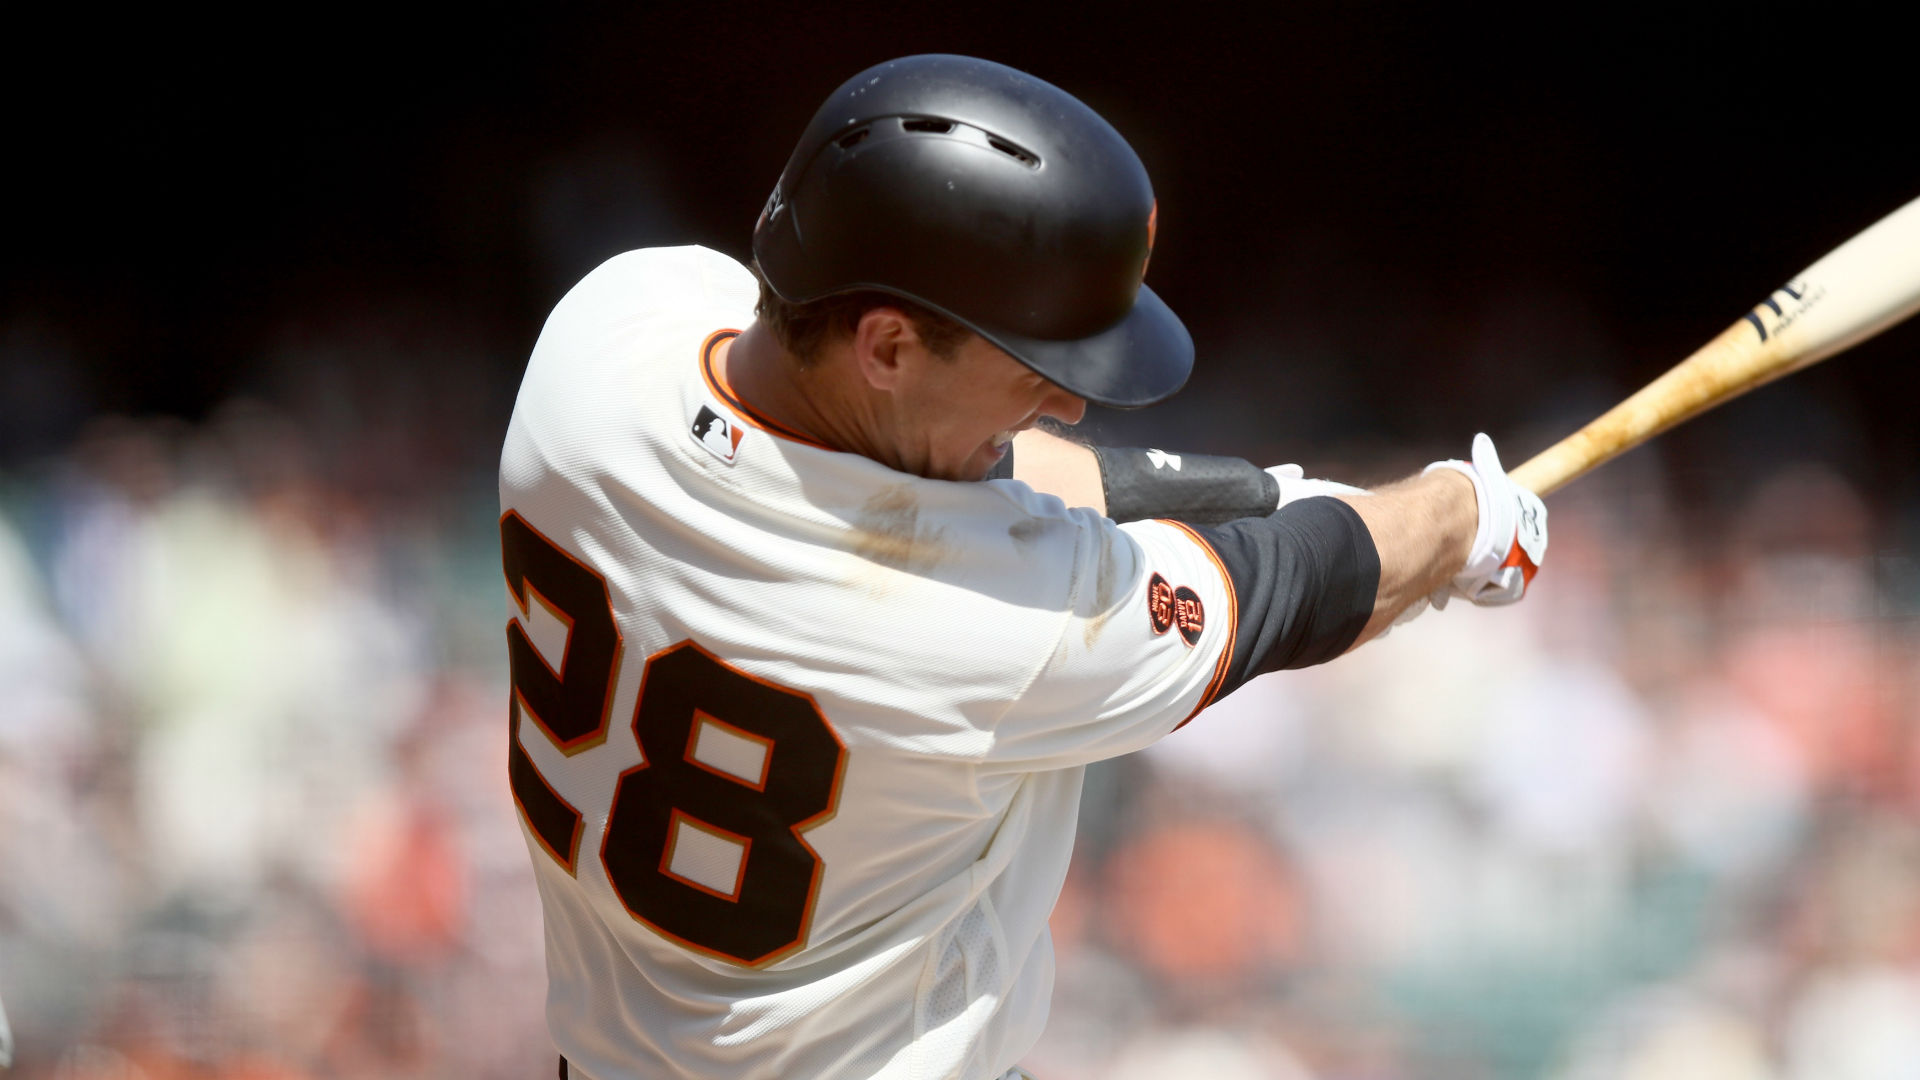 Posey could be limited in 2019